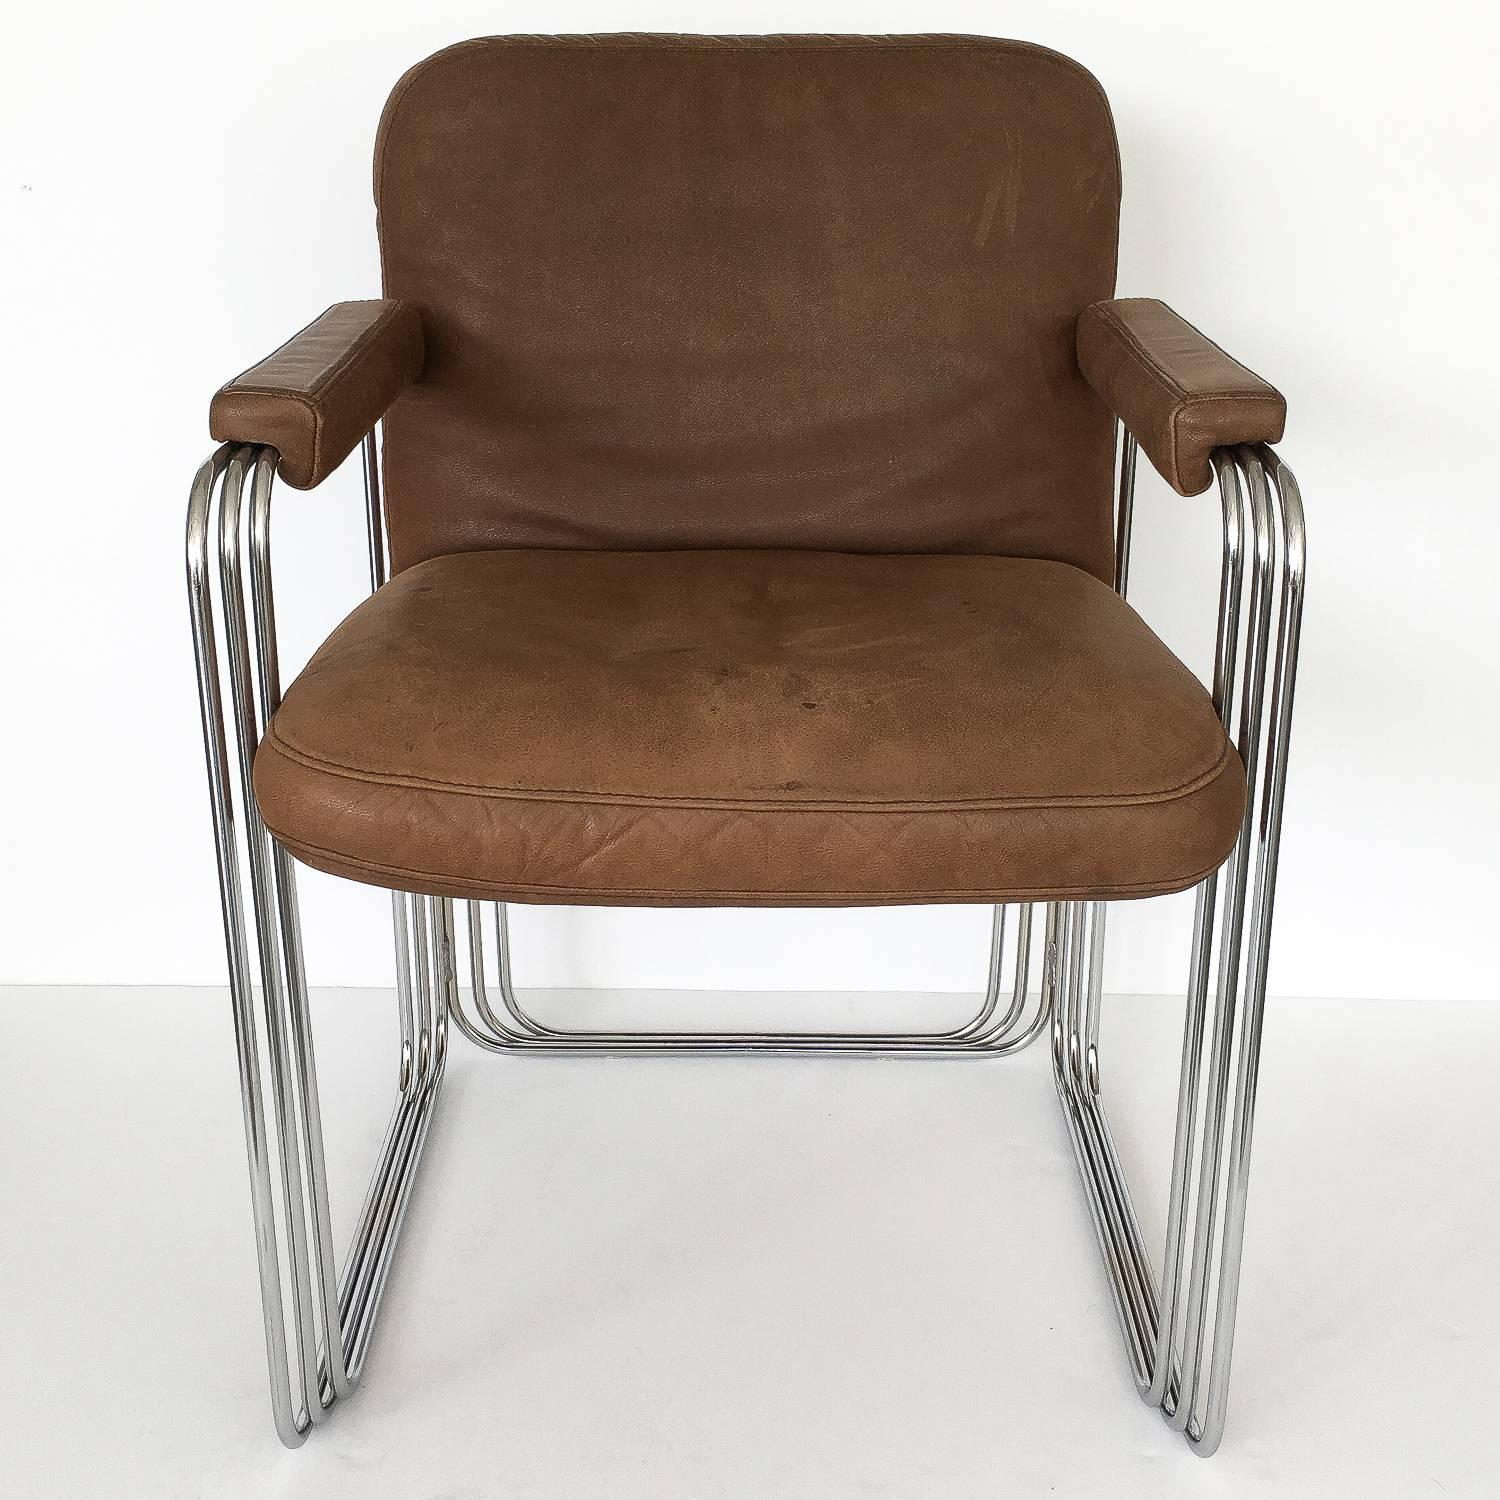 metal frame leather dining chair mesh office costco set six chrome and chairs attributed to pace at 1stdibs of unique brown armchairs circa 1970s these